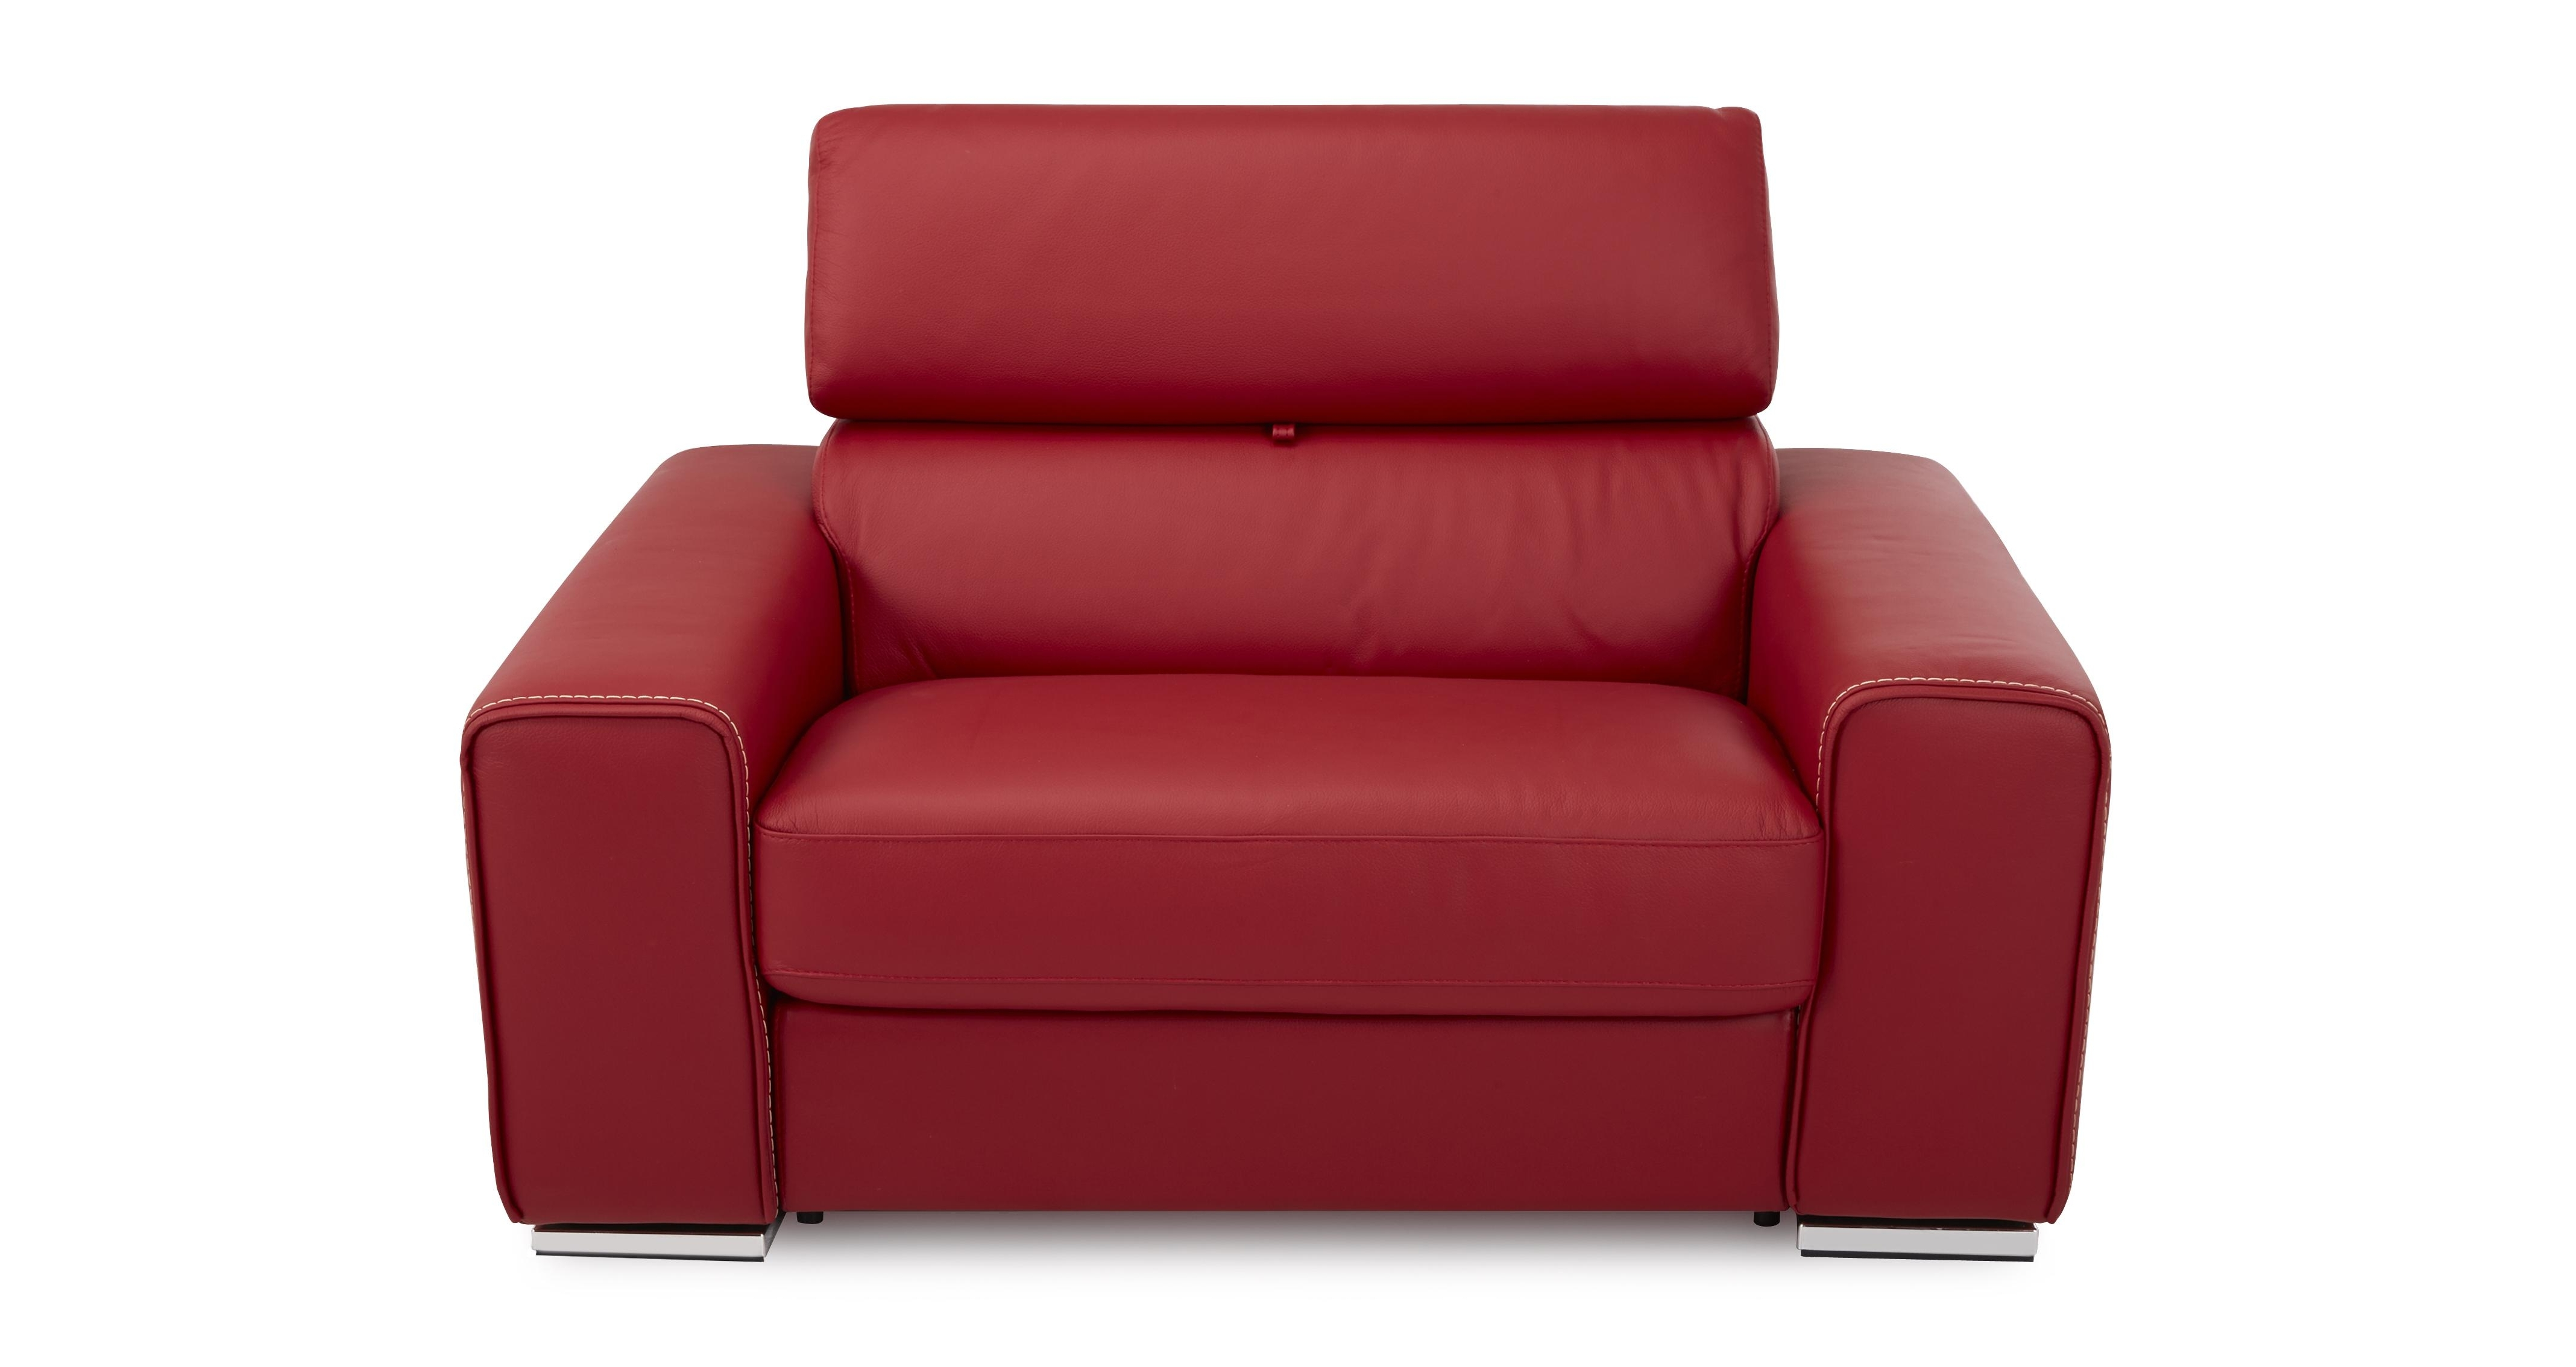 Sofa : Delightful One Seat Sectional With Chaise Small Sofa Bed For Most Current Single Seat Sofa Chairs (View 14 of 15)